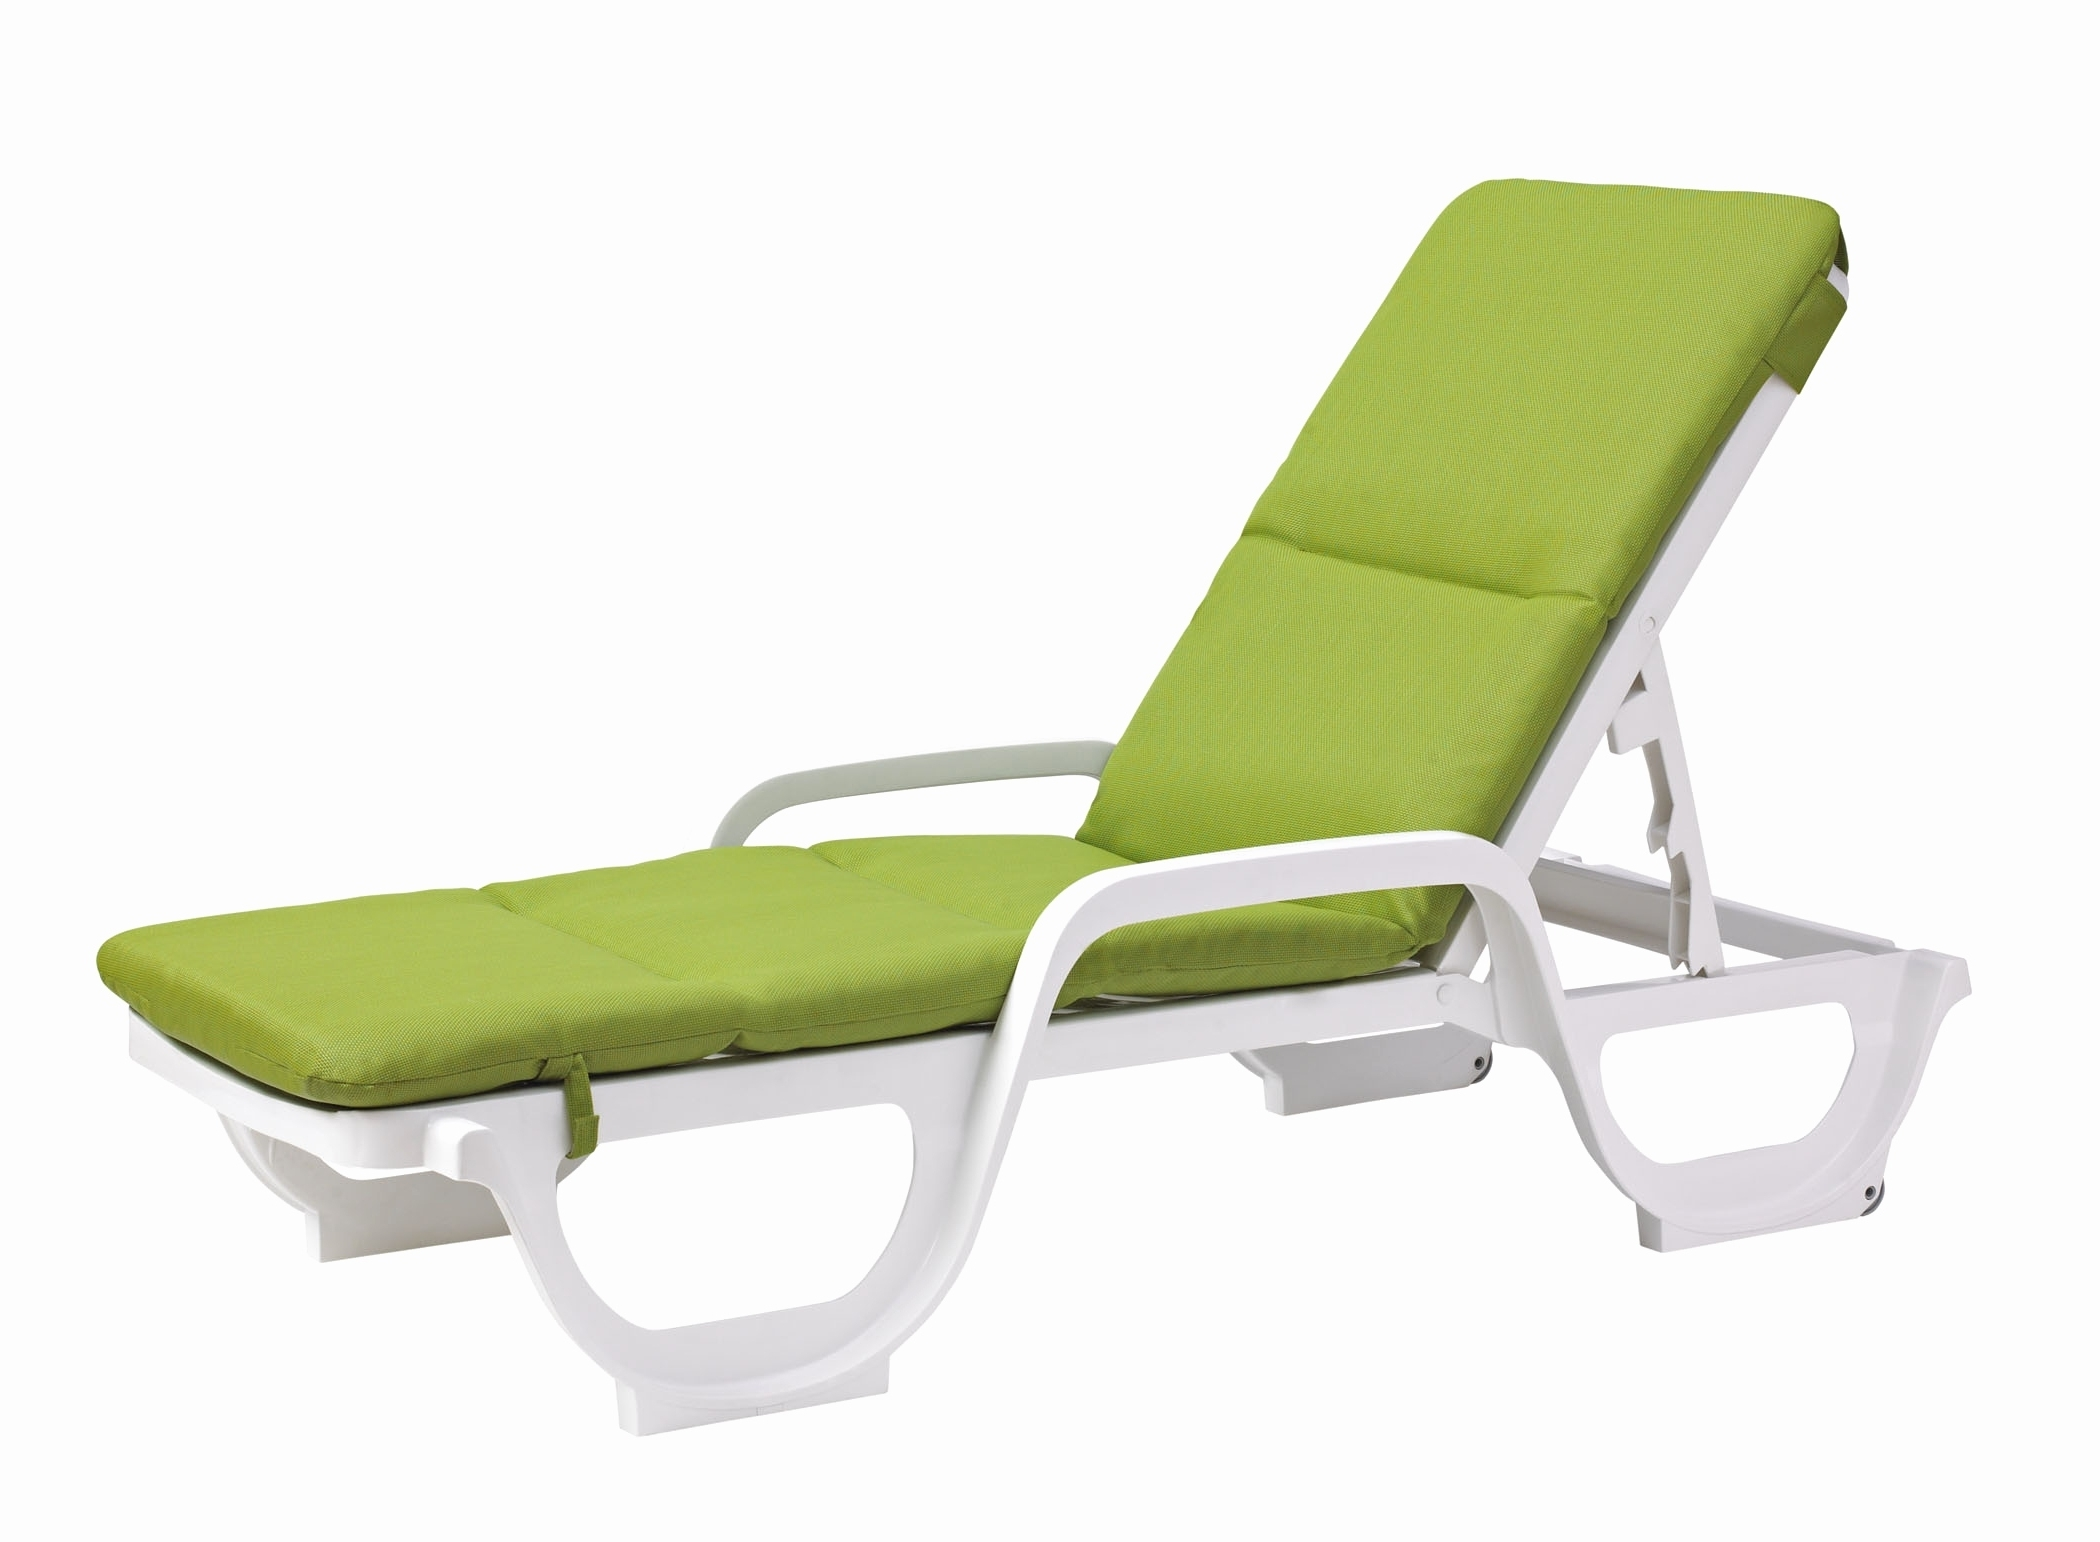 Outdoor : Contemporary Chaise Lounge Chairs Indoors Outdoor Chaise Within Most Recently Released Target Outdoor Chaise Lounges (View 8 of 15)